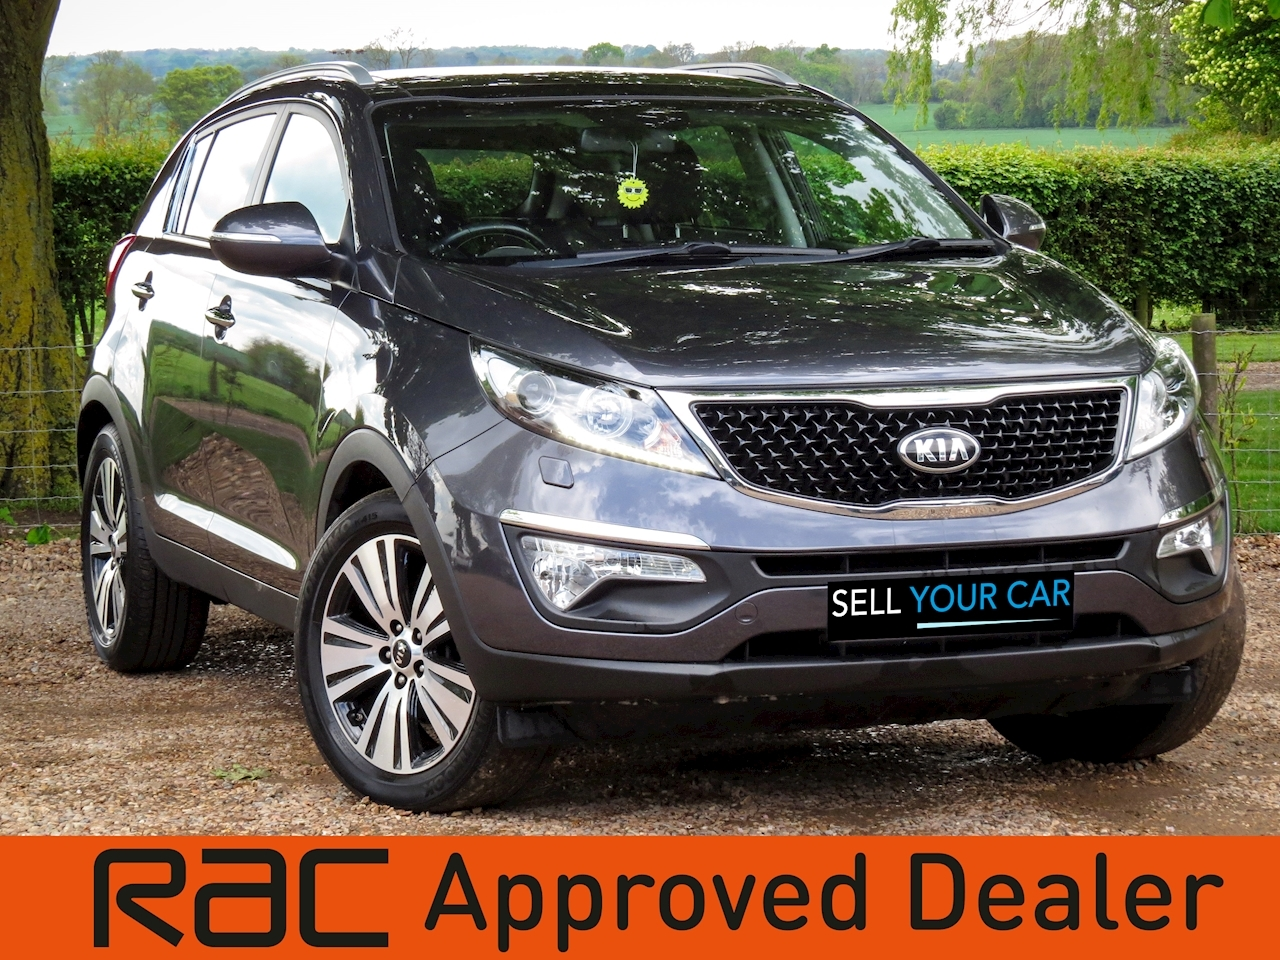 Used Kia Sportage Crdi 3 Sat Nav Isg | Sell Your Car With Us Kia Nav Map Update Usa on ind map, nev map, gps map, mind map, bc map, se map, map map, home map, search map, de map, na map, microsoft map, cal map,